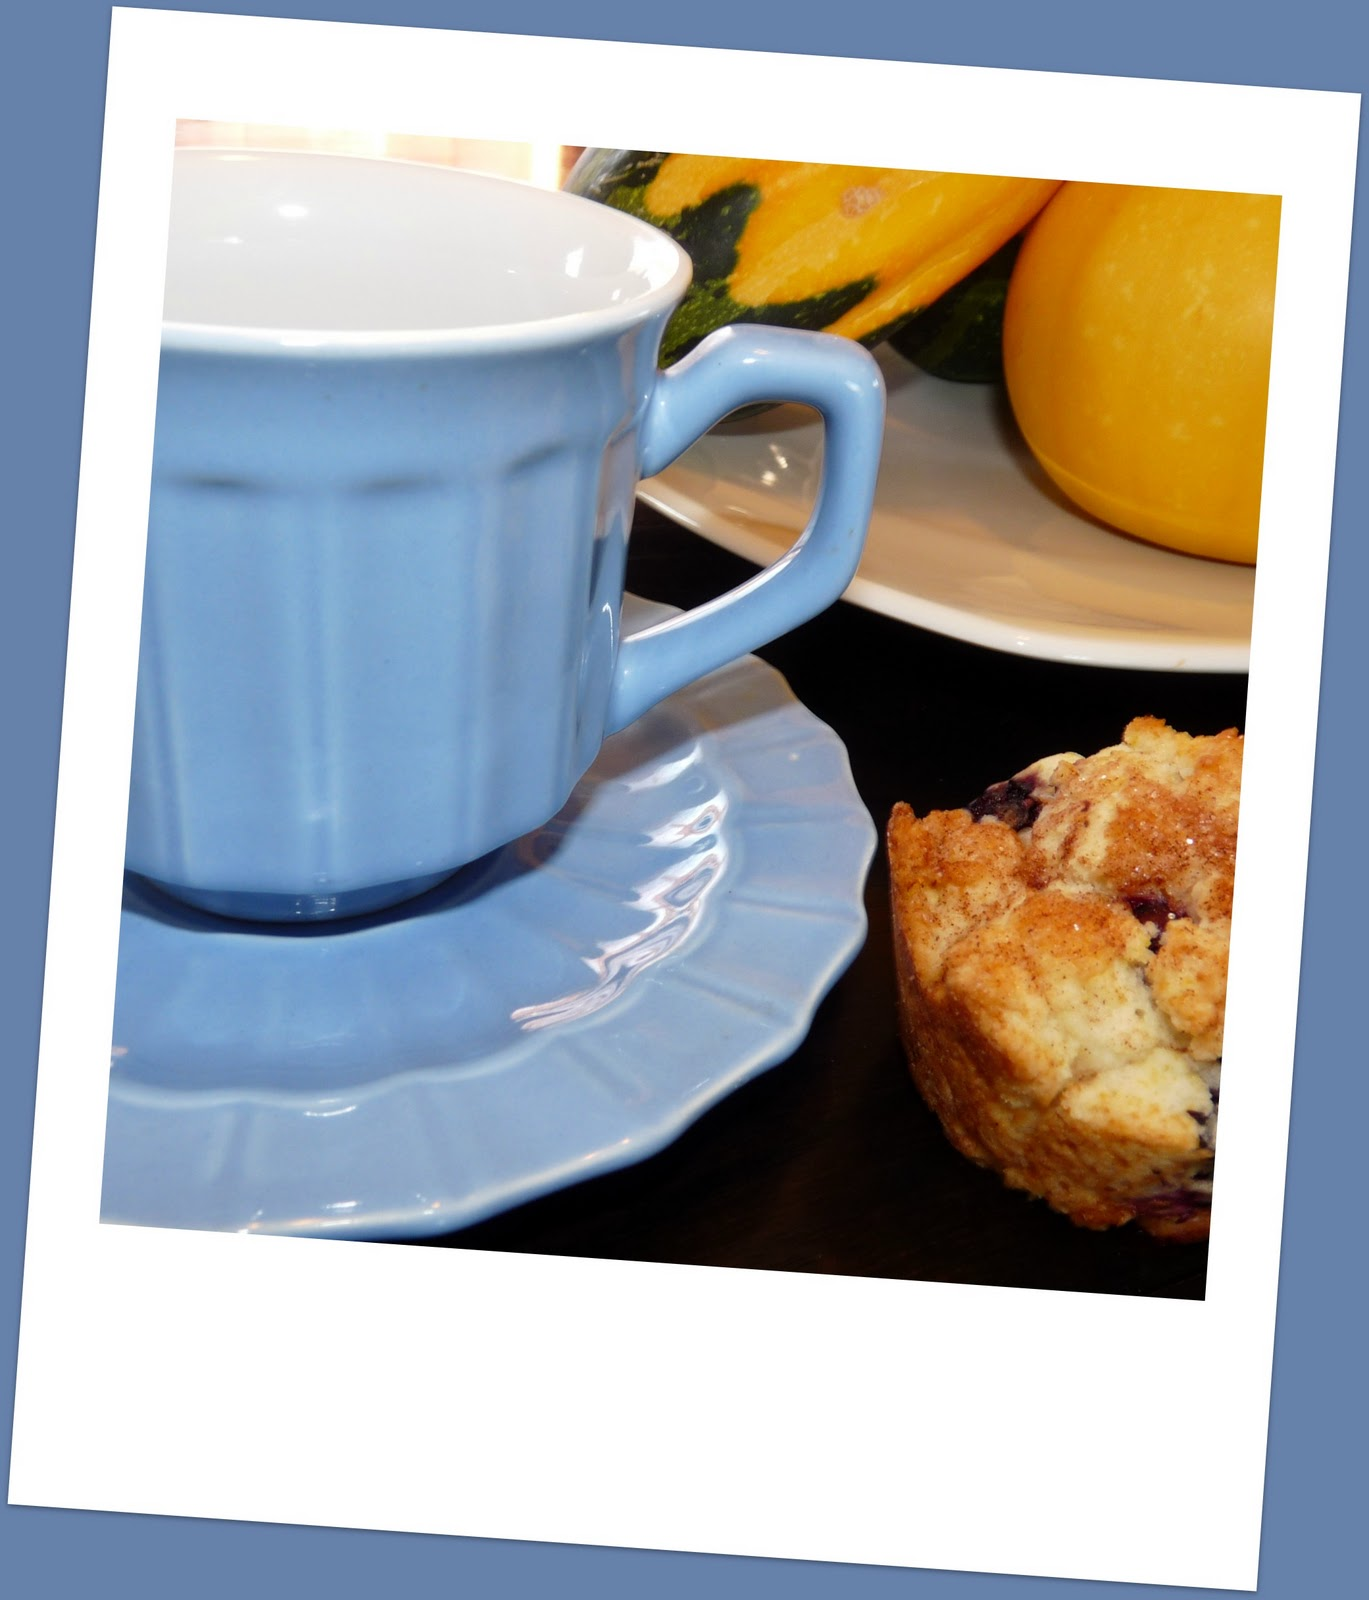 Recipes From A Humble Kitchen: Lemon-Blueberry Muffins